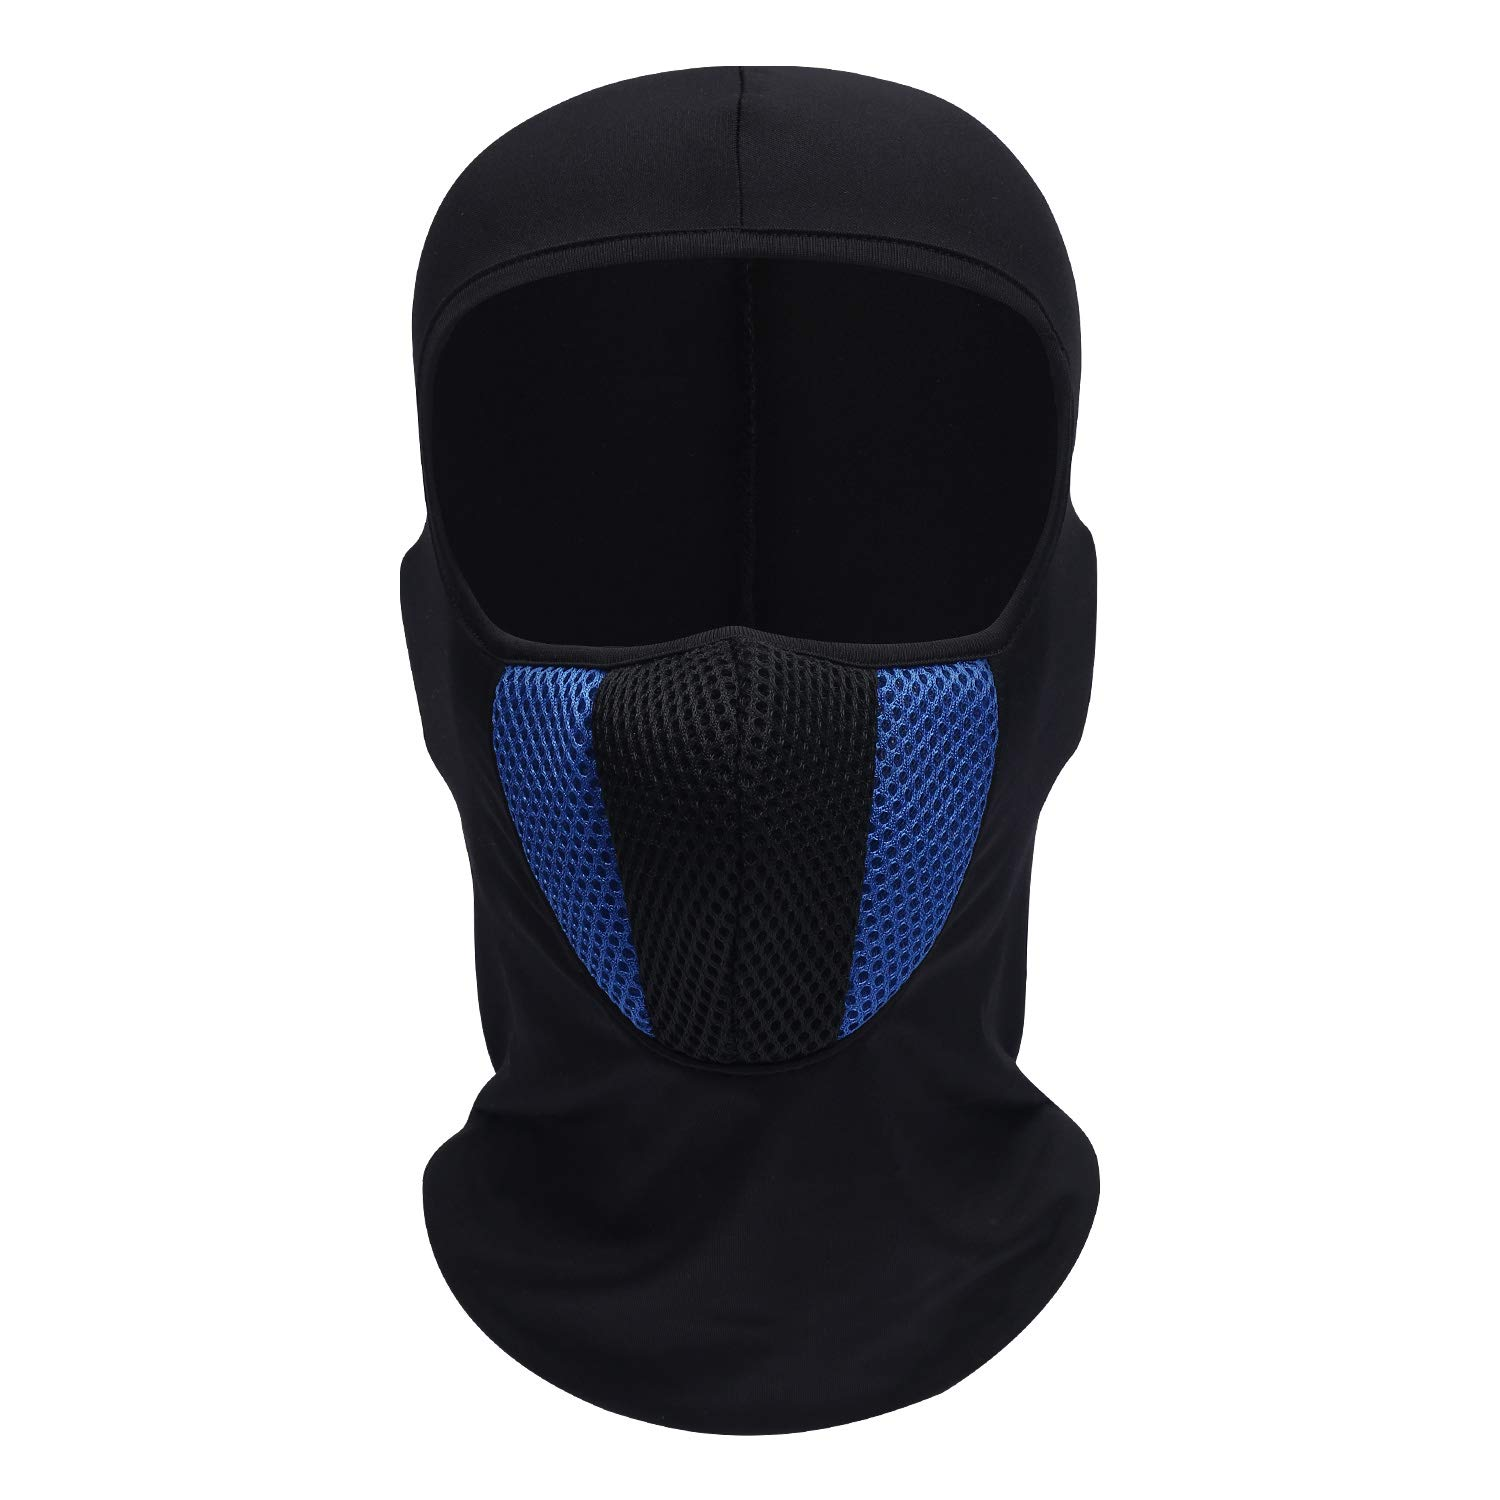 Dust /& breathable Outdoor Multifunctional Summer Windproof Full Face Mask for Cycling Hiking Balaclava Motorcycle